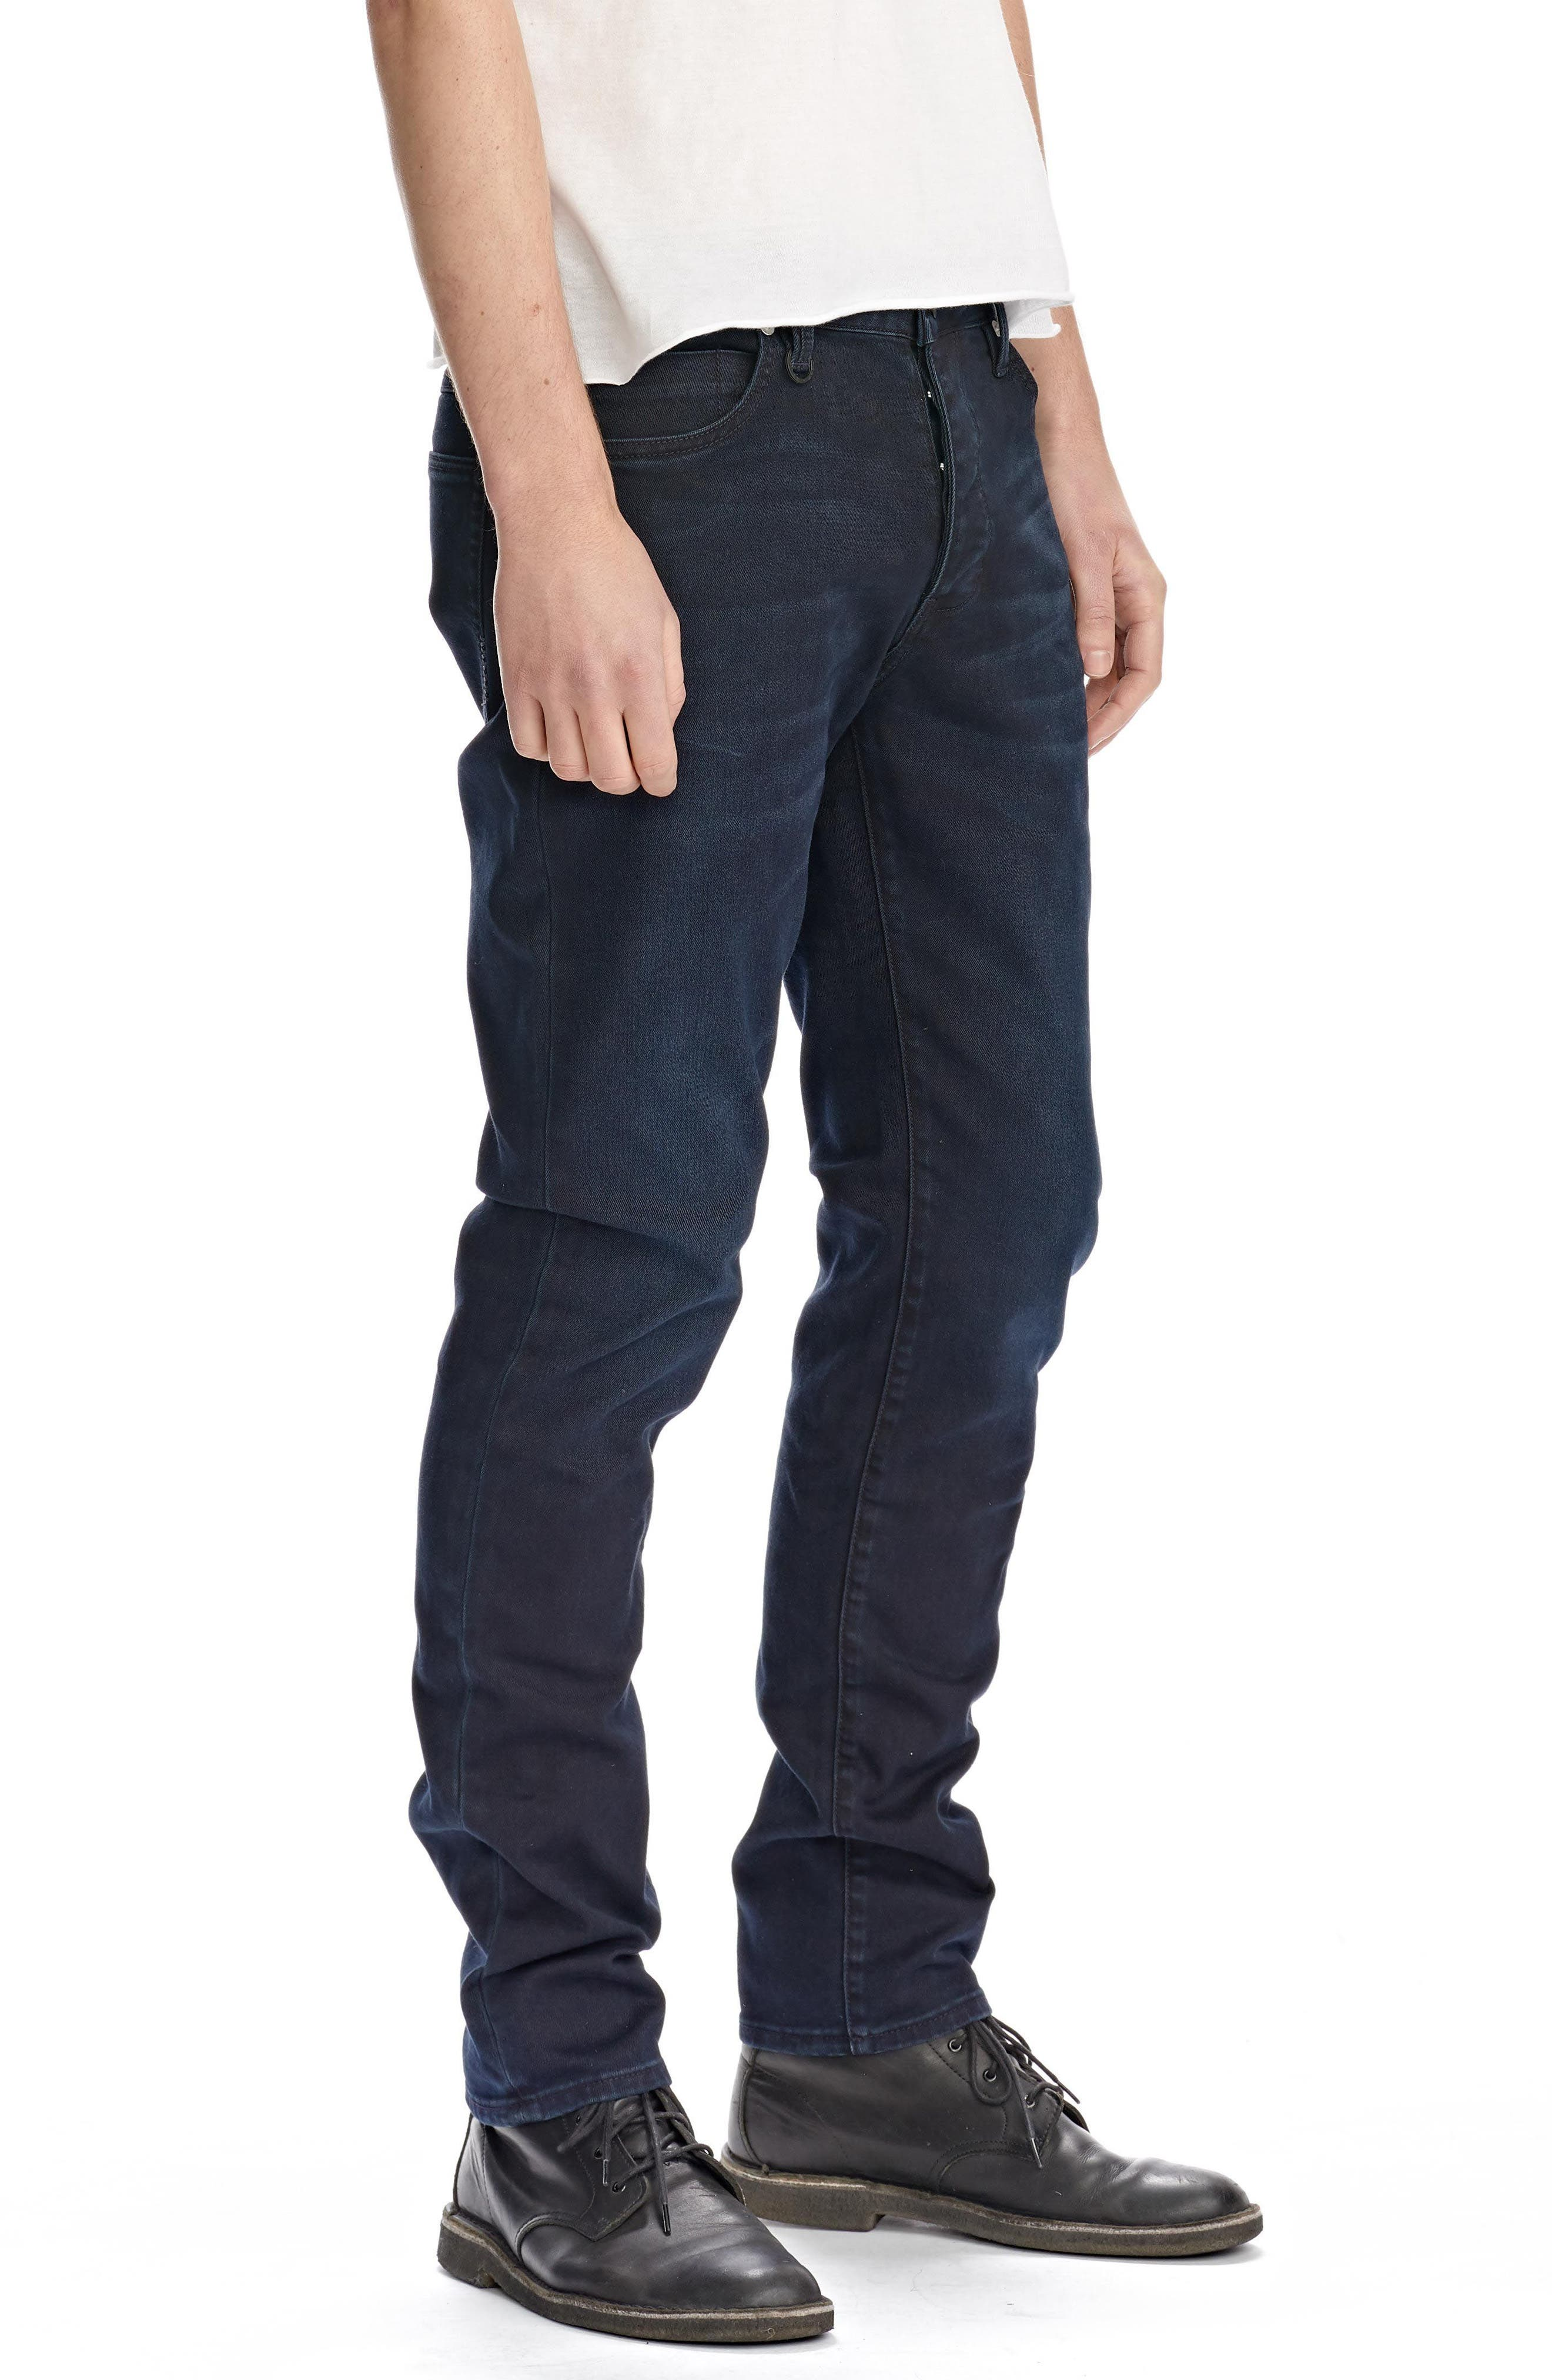 Lou Slim Fit Jeans,                             Alternate thumbnail 3, color,                             400